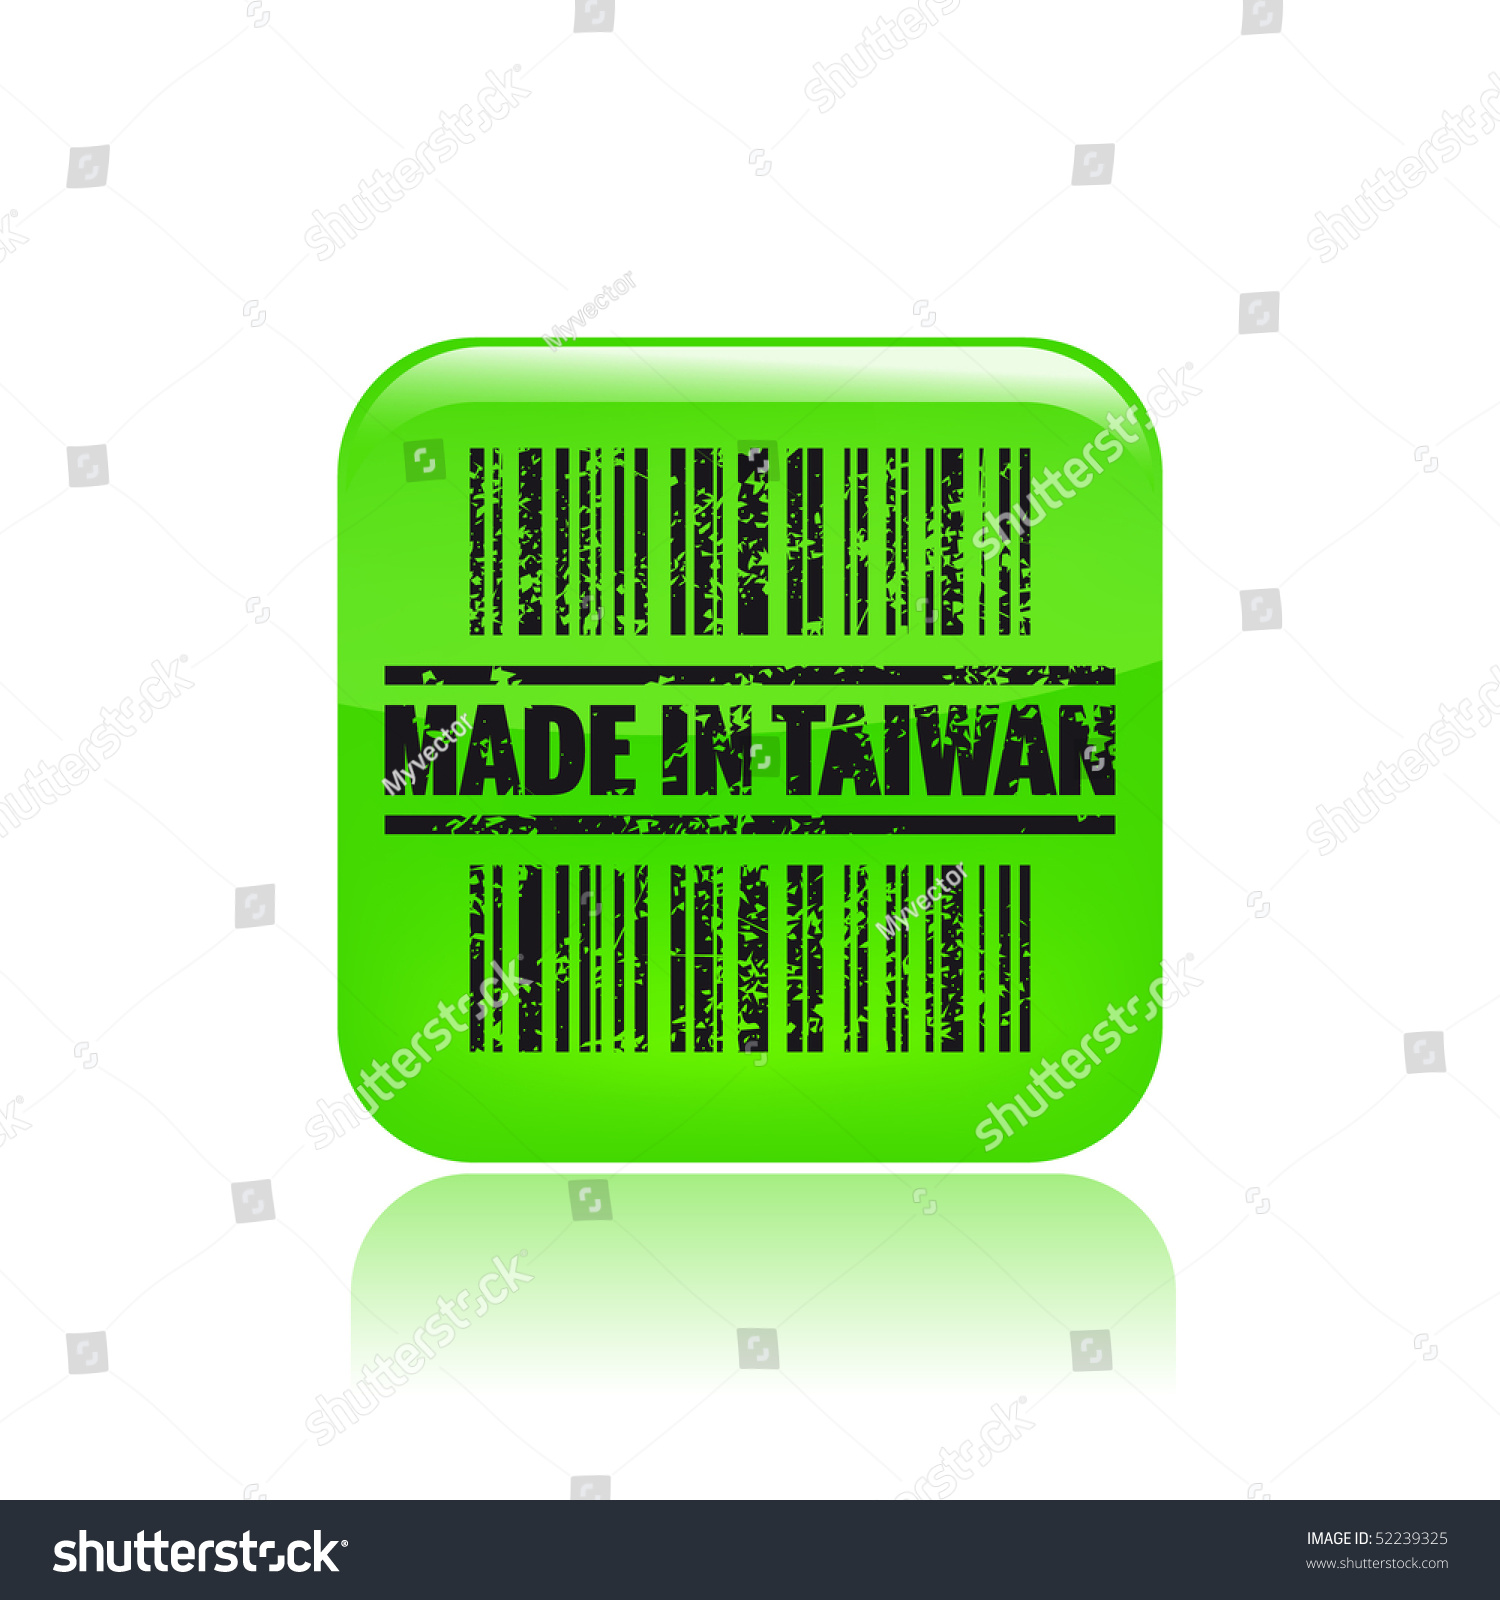 vector illustration of barcode icon marked made in taiwan 52239325 shutterstock. Black Bedroom Furniture Sets. Home Design Ideas